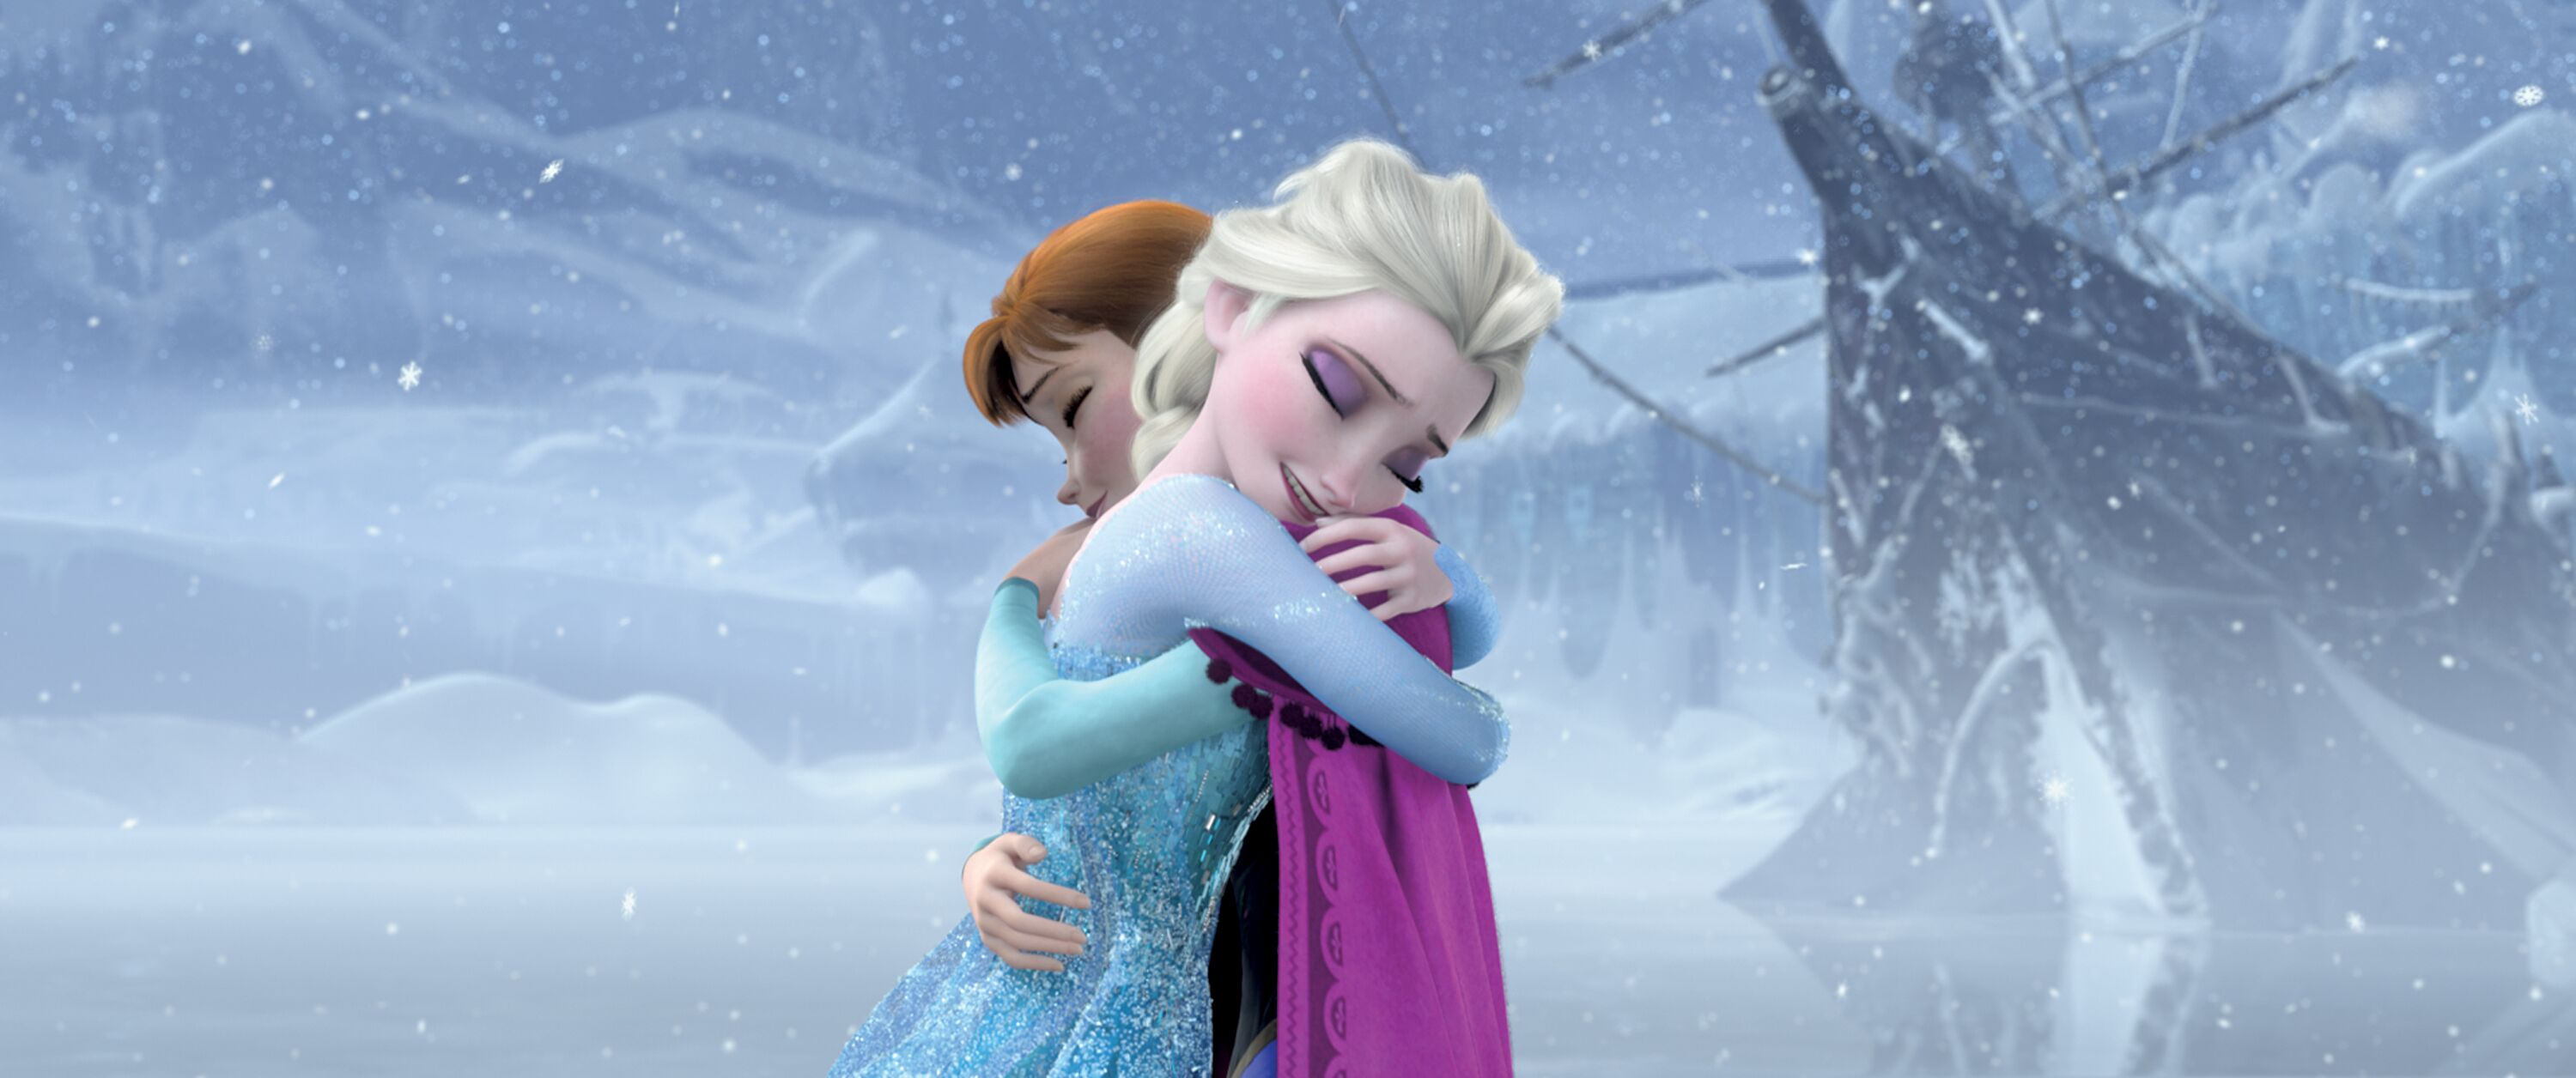 When will Frozen 2 be available on Disney Plus?